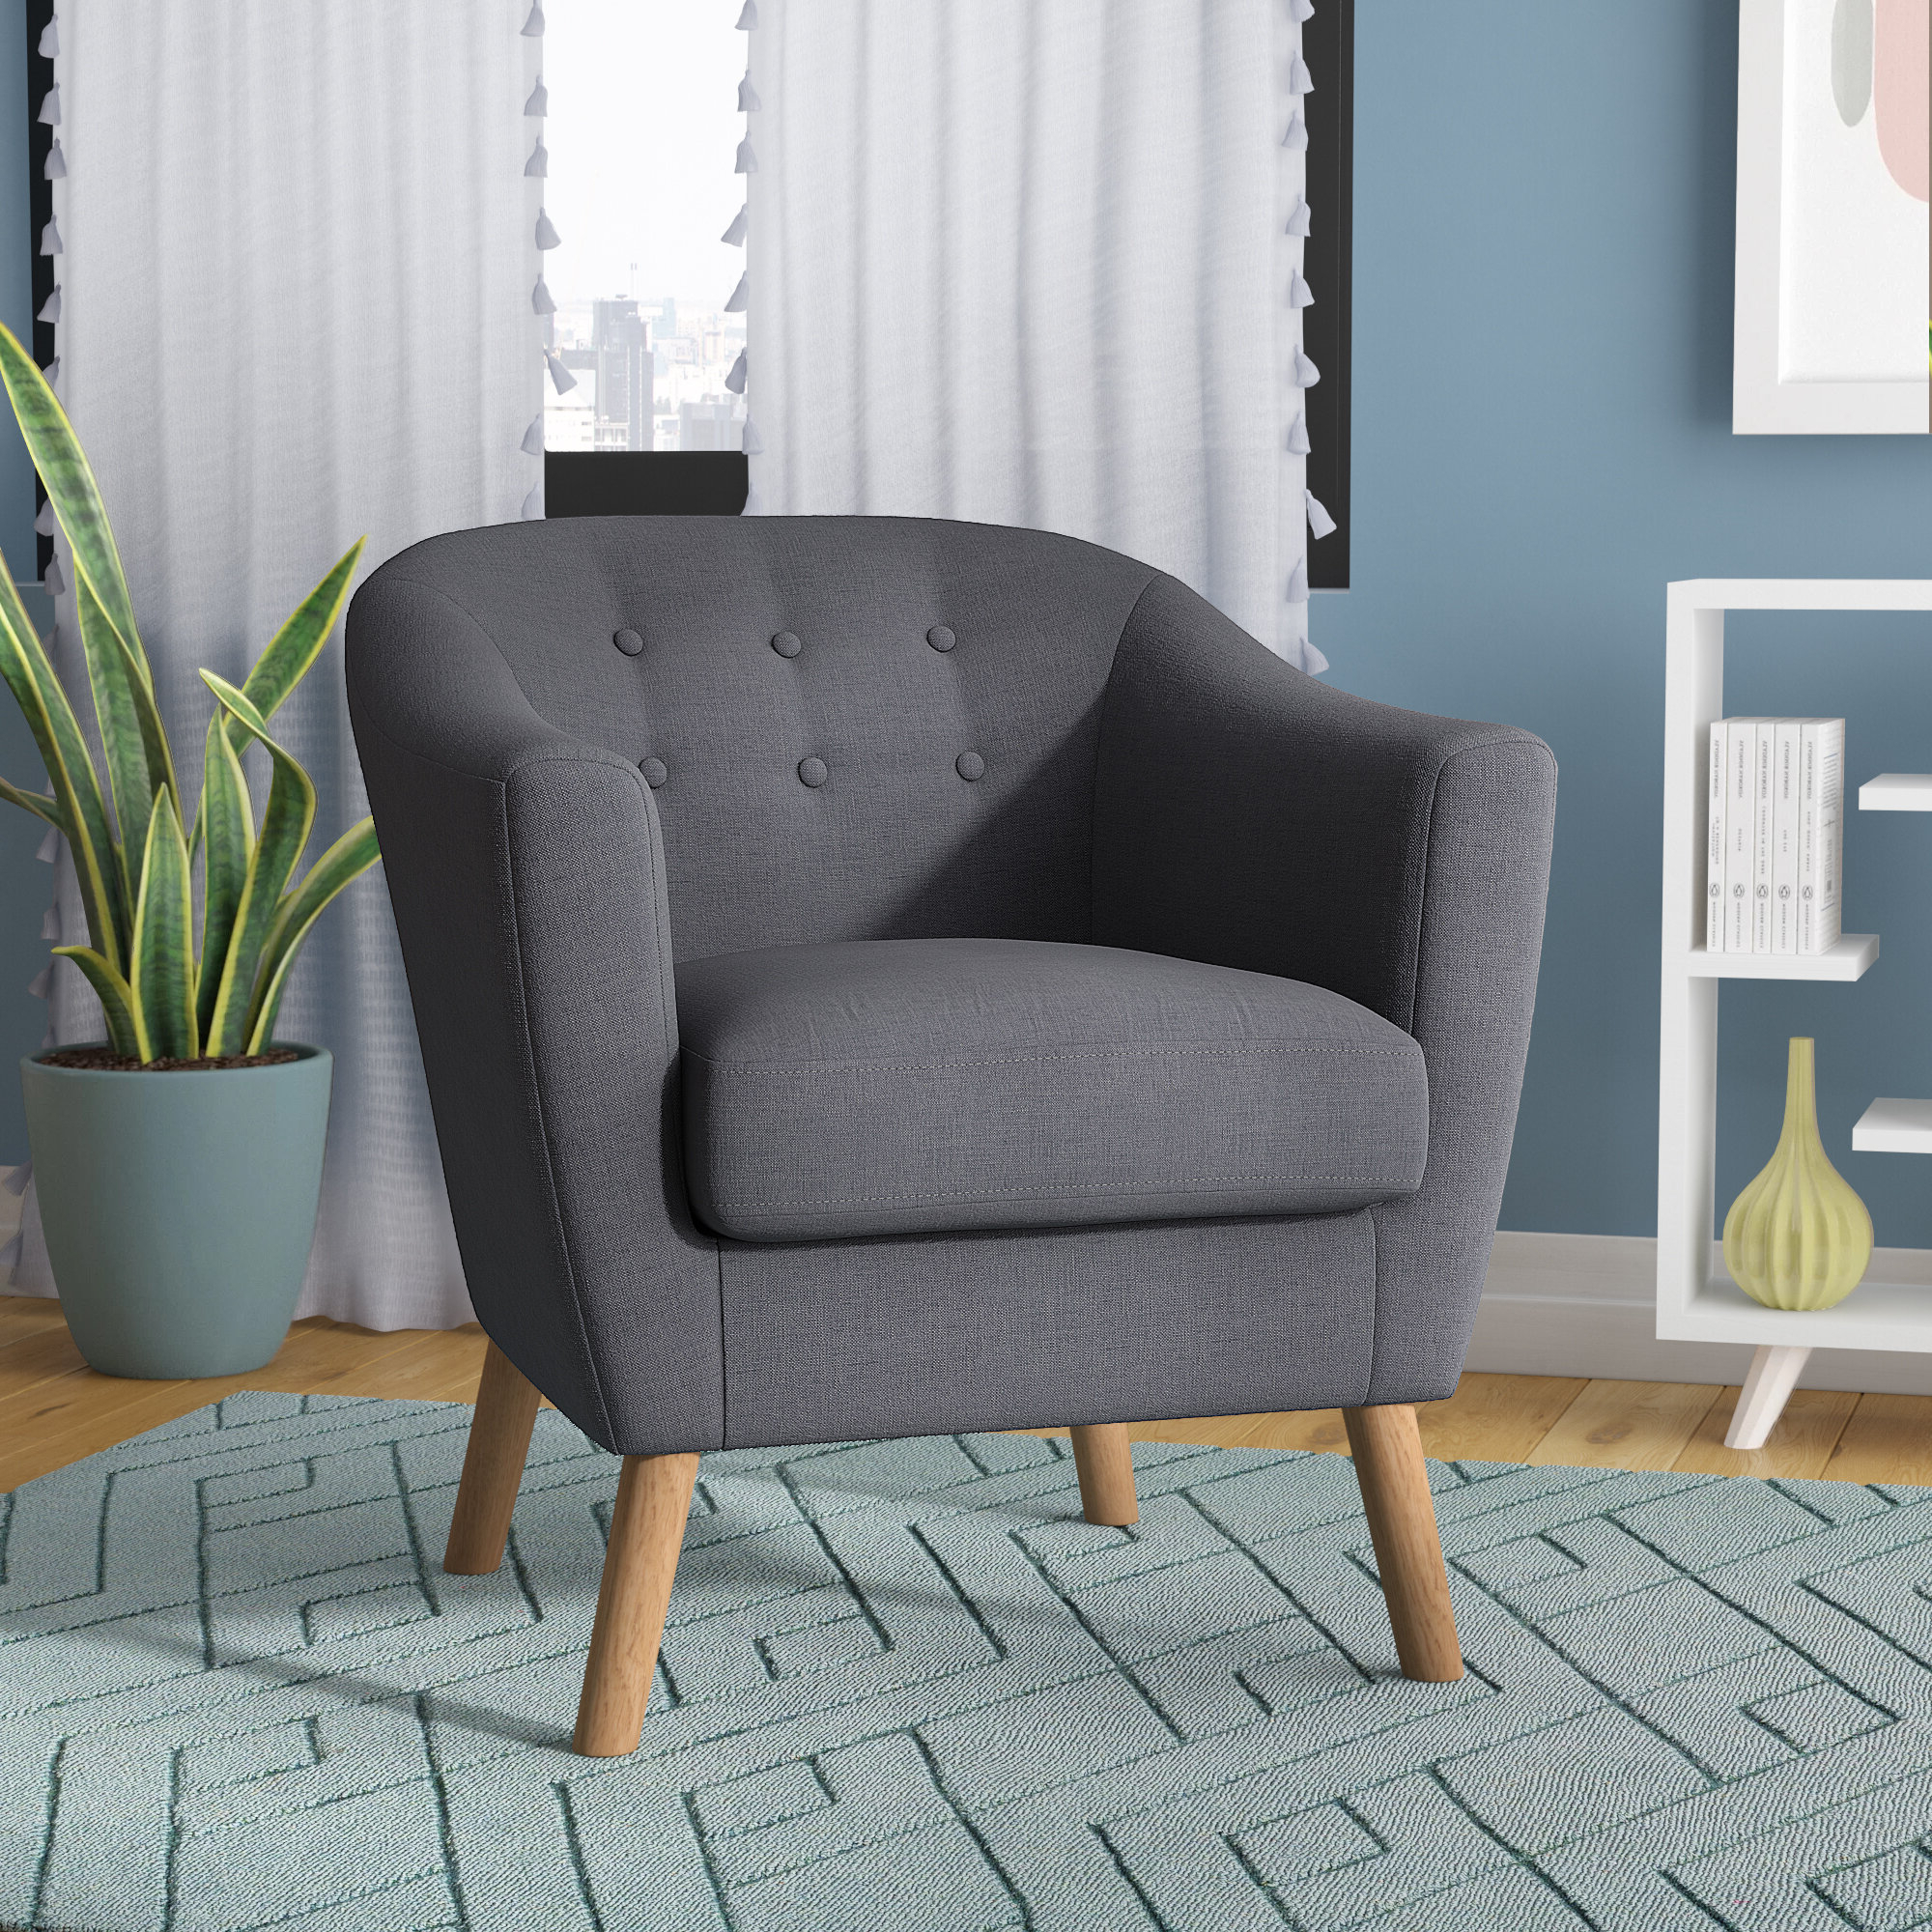 Claudel Polyester Blend Barrel Chairs Pertaining To Most Current Barrel Scandinavian Accent Chairs You'll Love In (View 7 of 20)